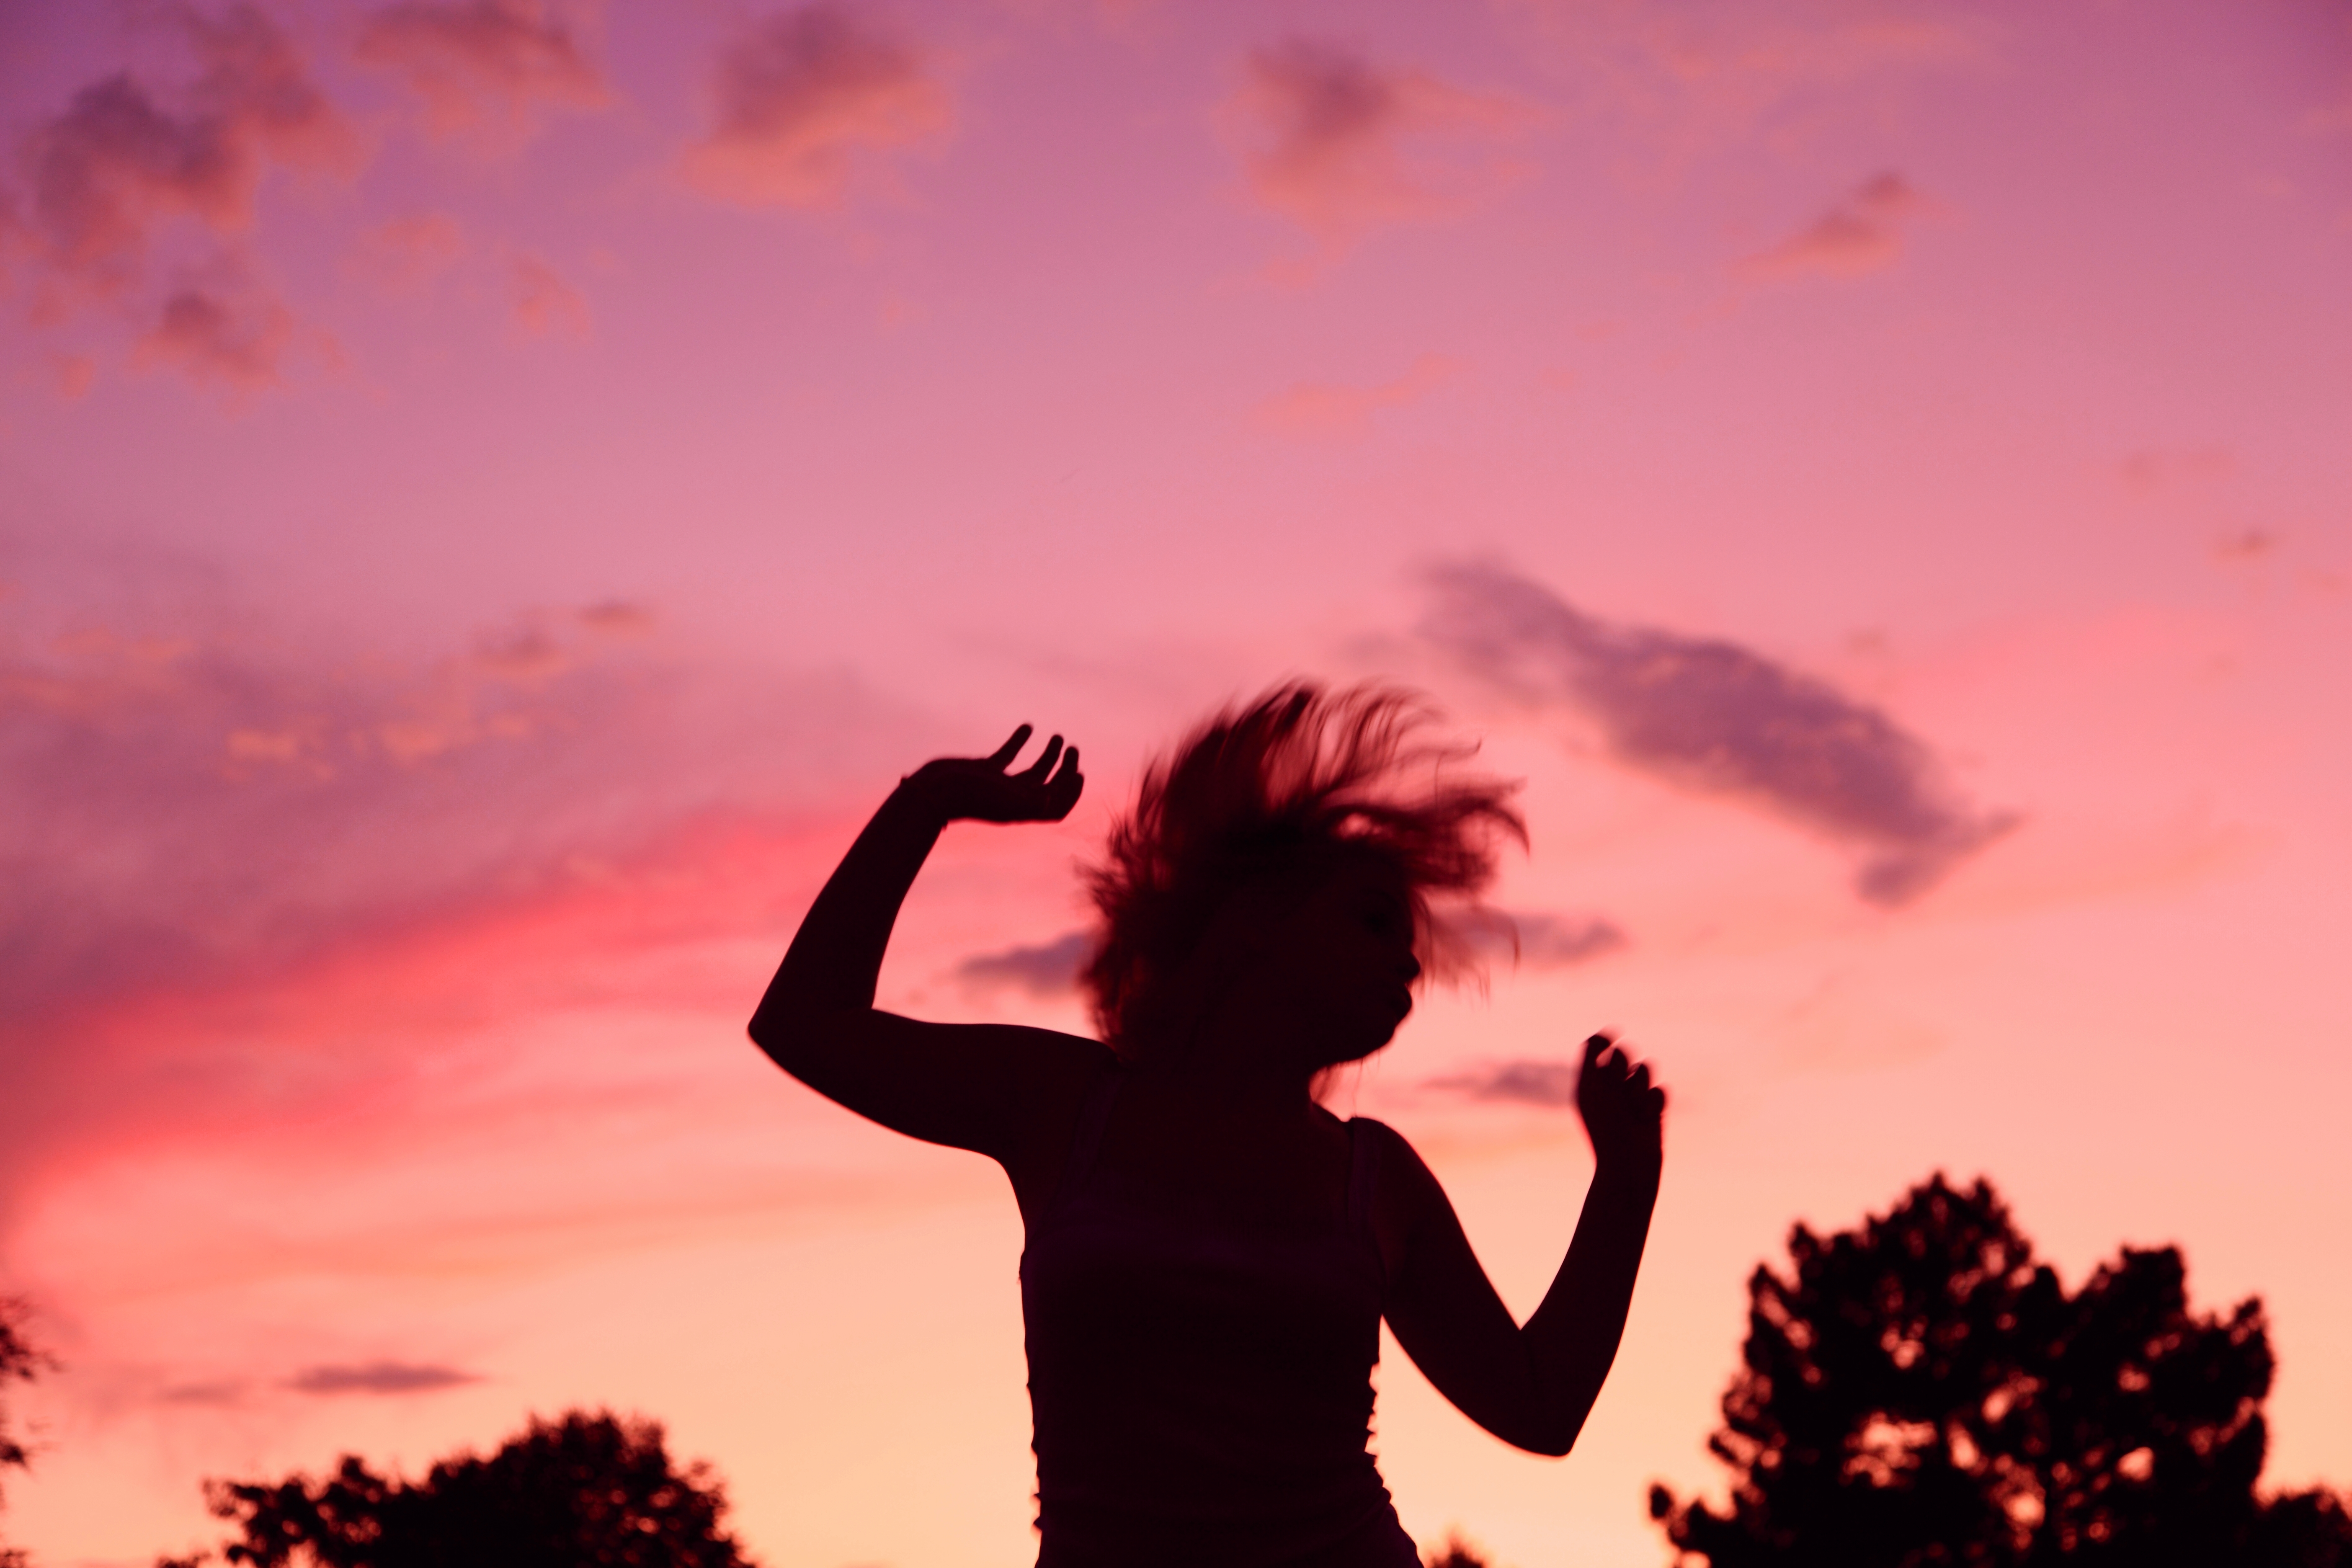 dancing girl silhouette - photo #36